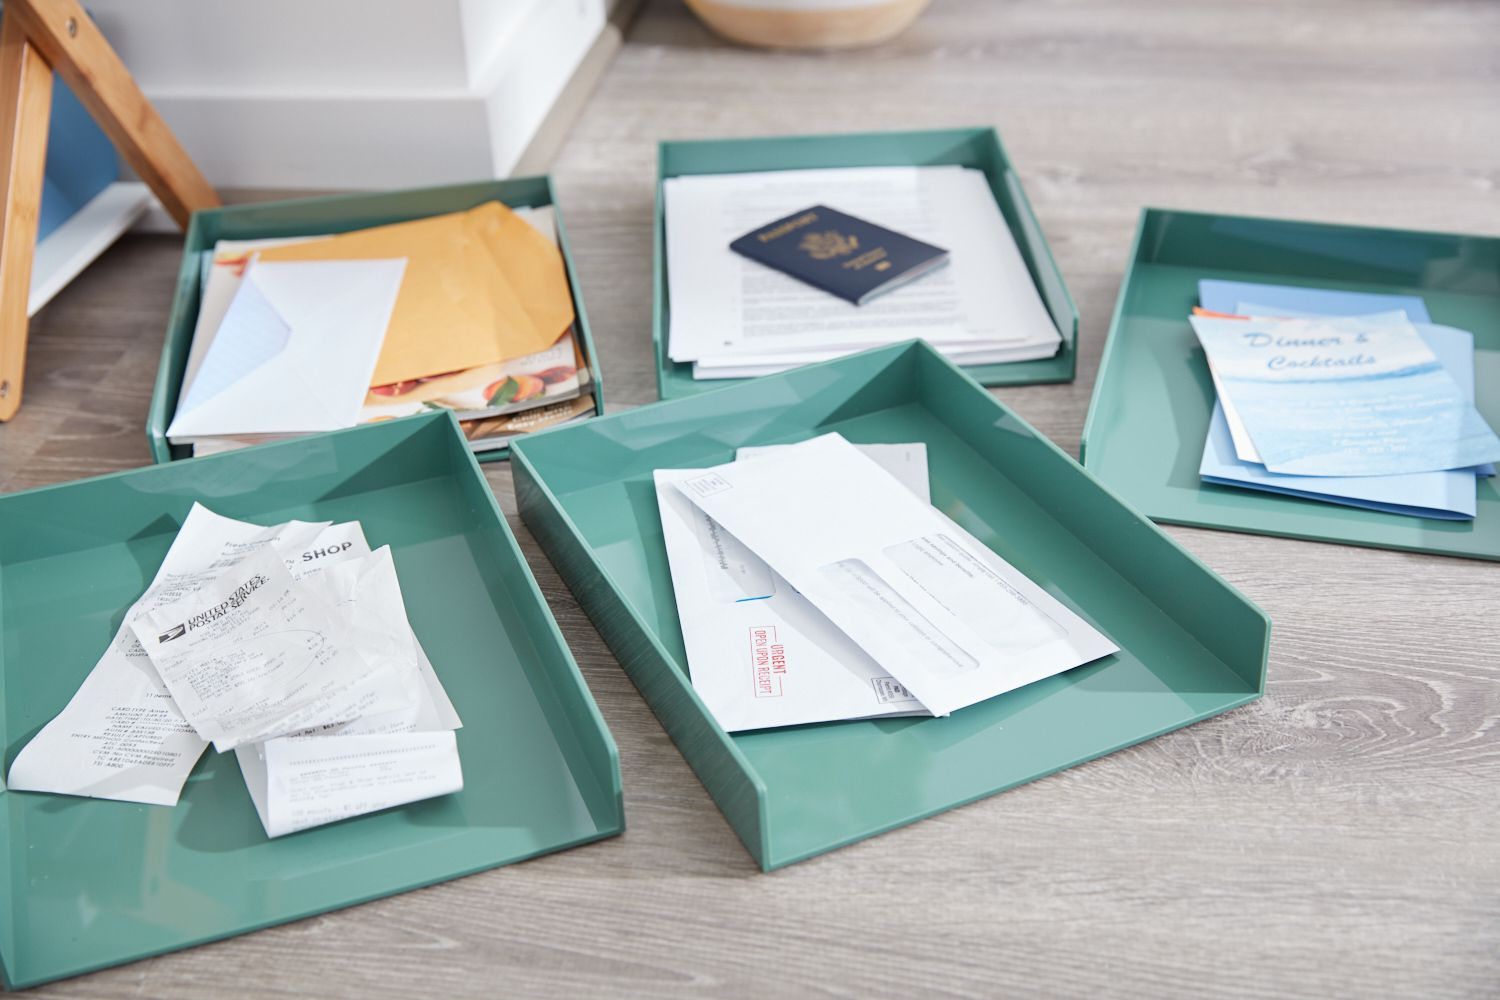 Separated papers in 5 categories